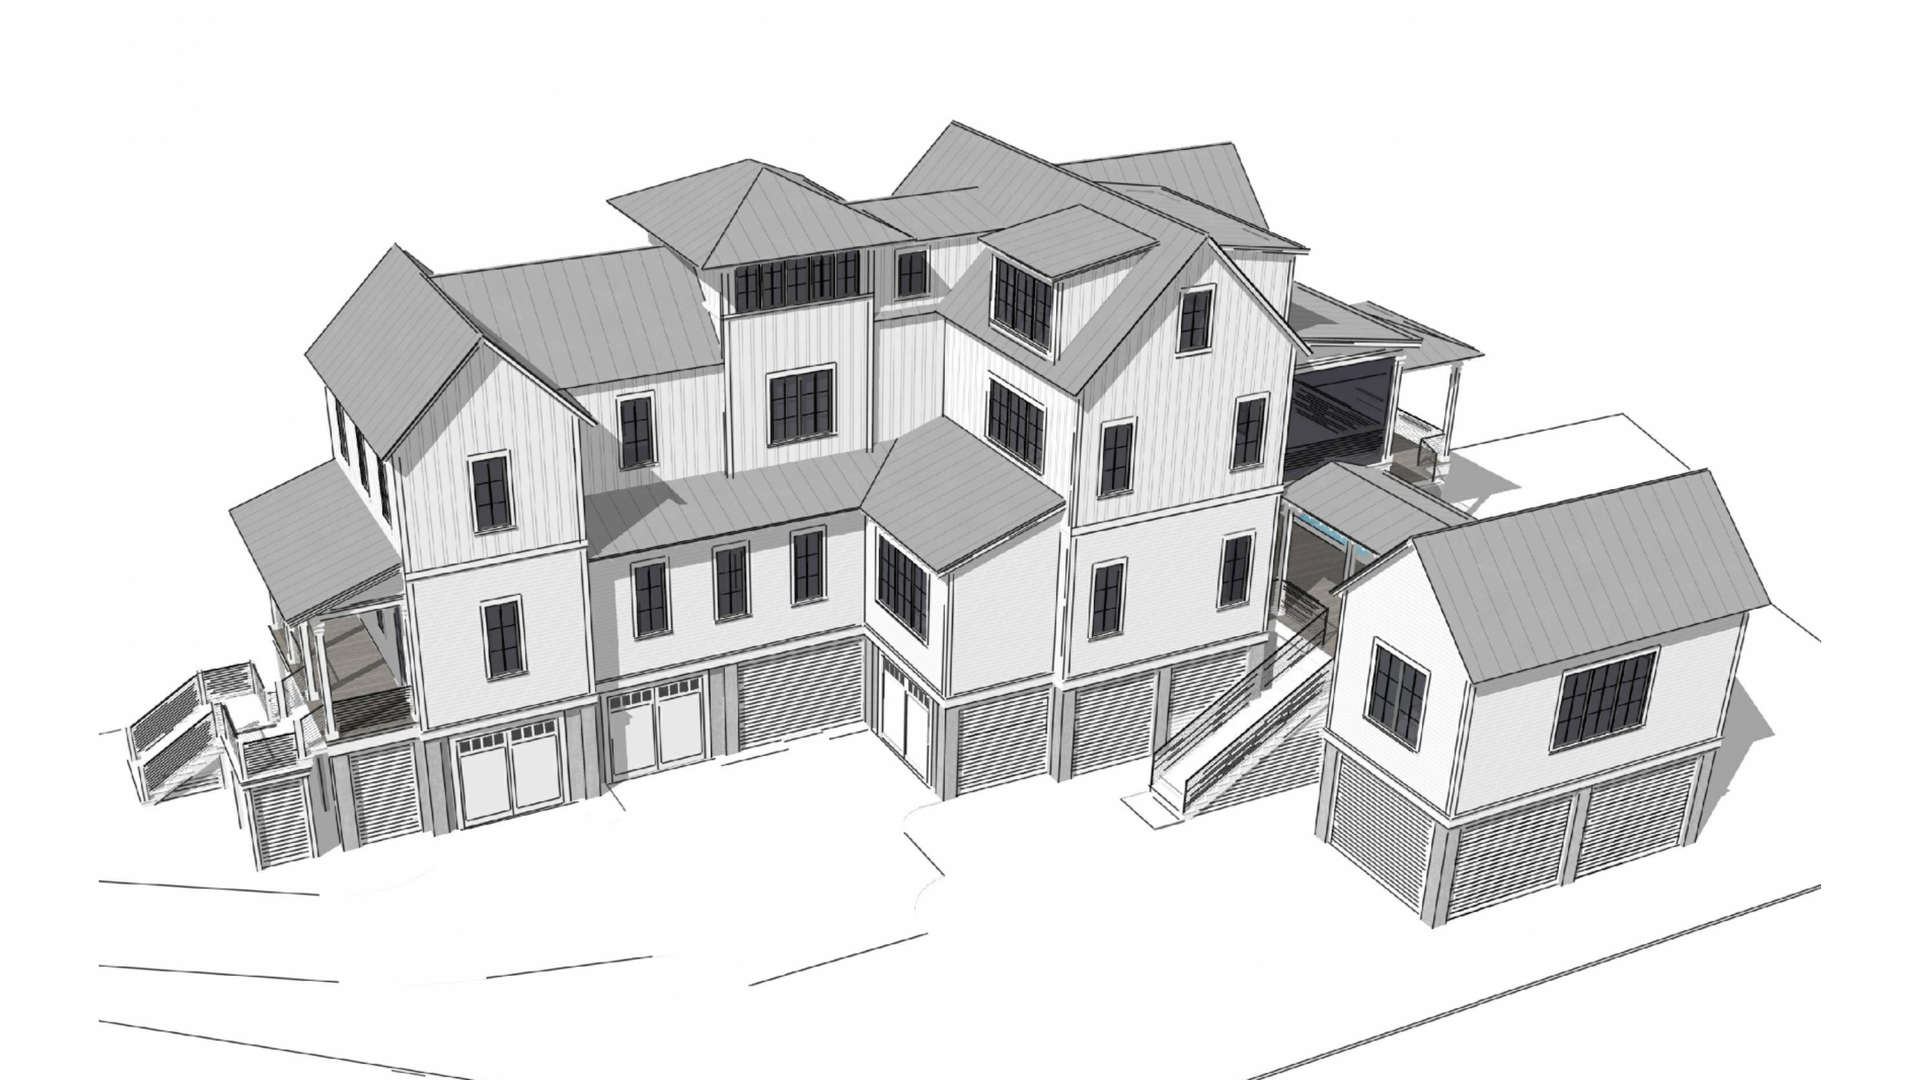 16 of 36. Home renderings are to act as aid in lot visualization. Only lot for sale.